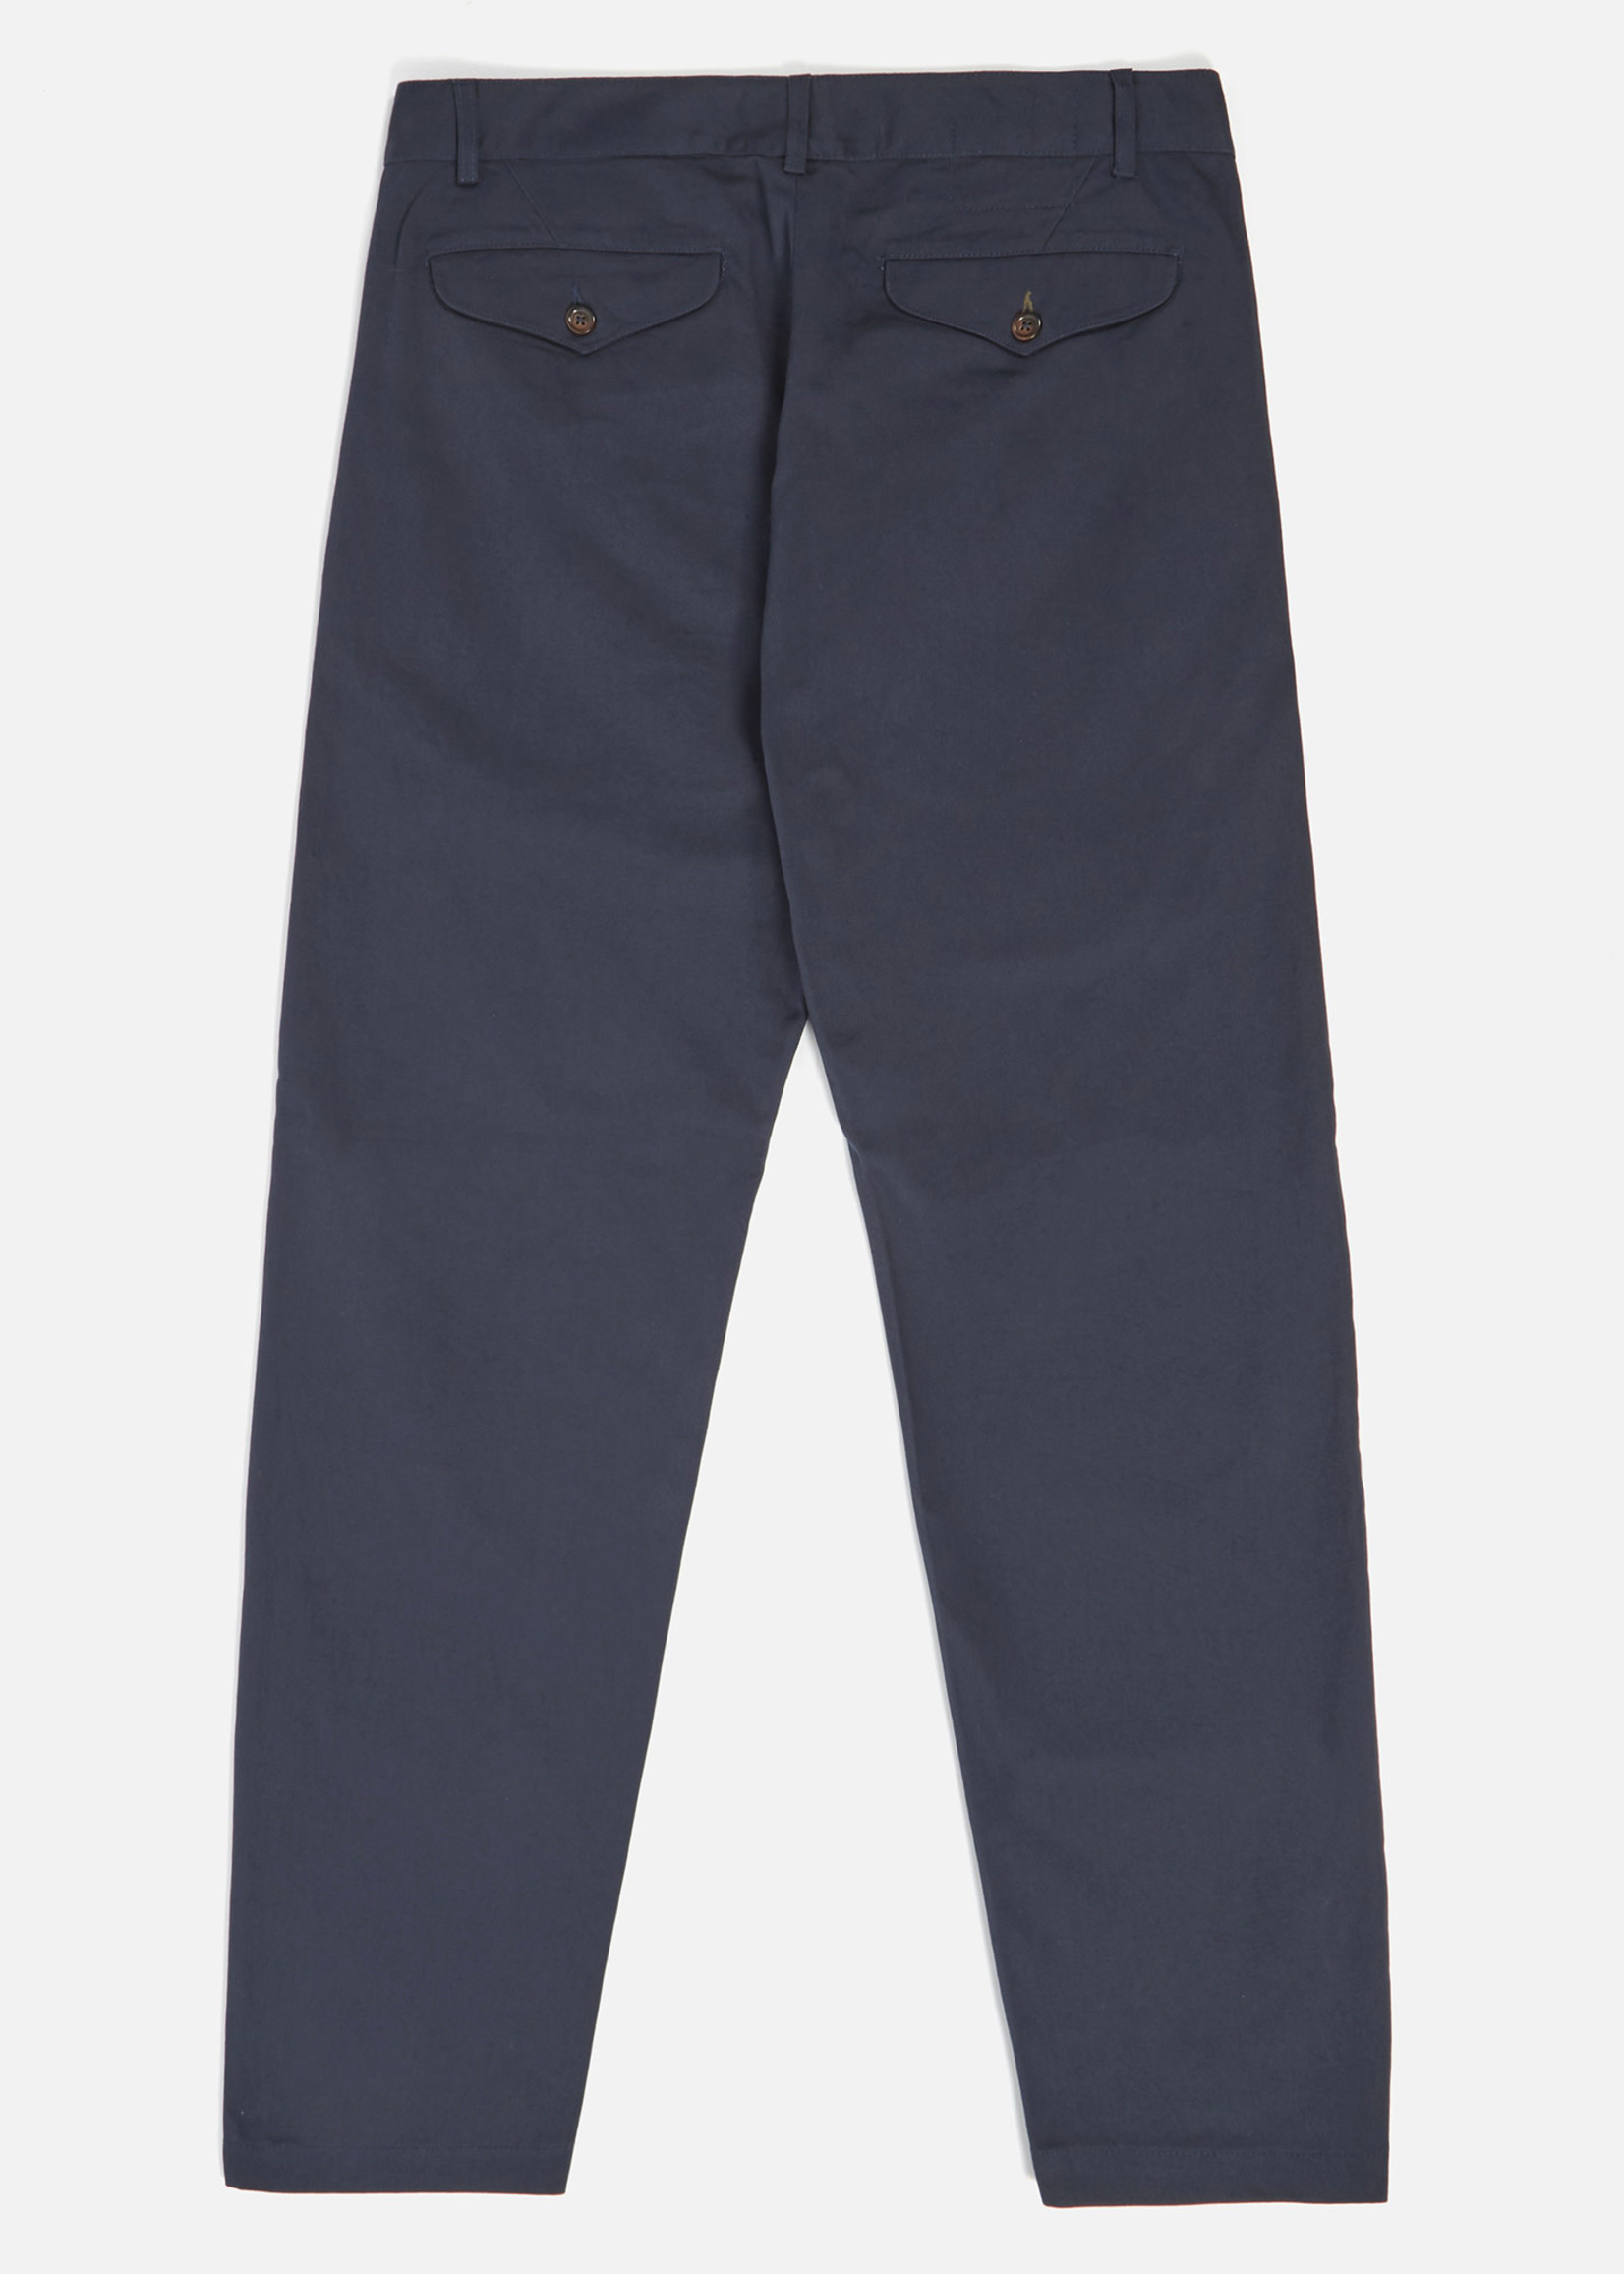 Universal Works Aston Pant in Navy Twill Cotton by Universal Works